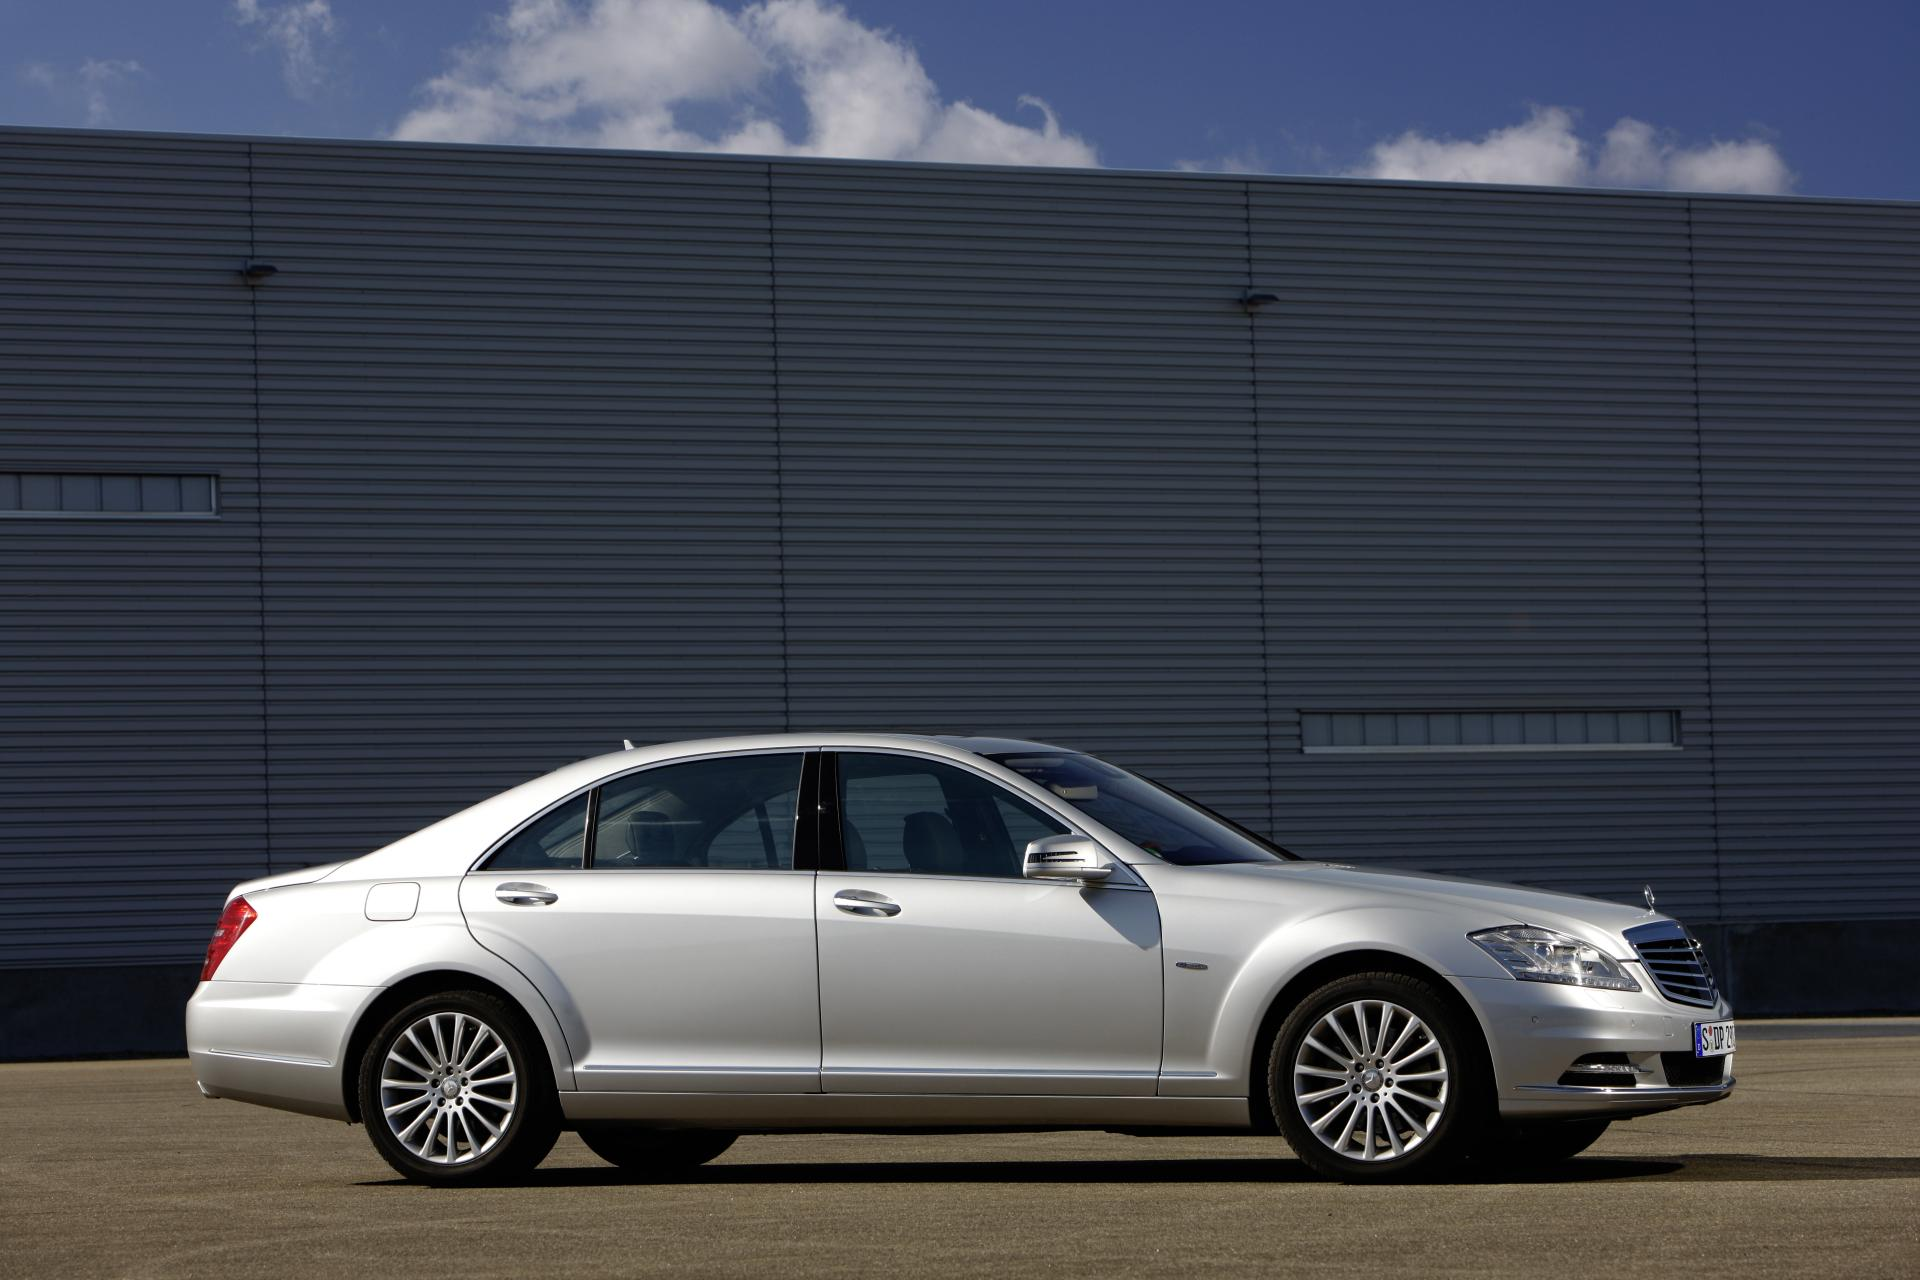 2012 mercedes benz s class news and information for Facts about mercedes benz